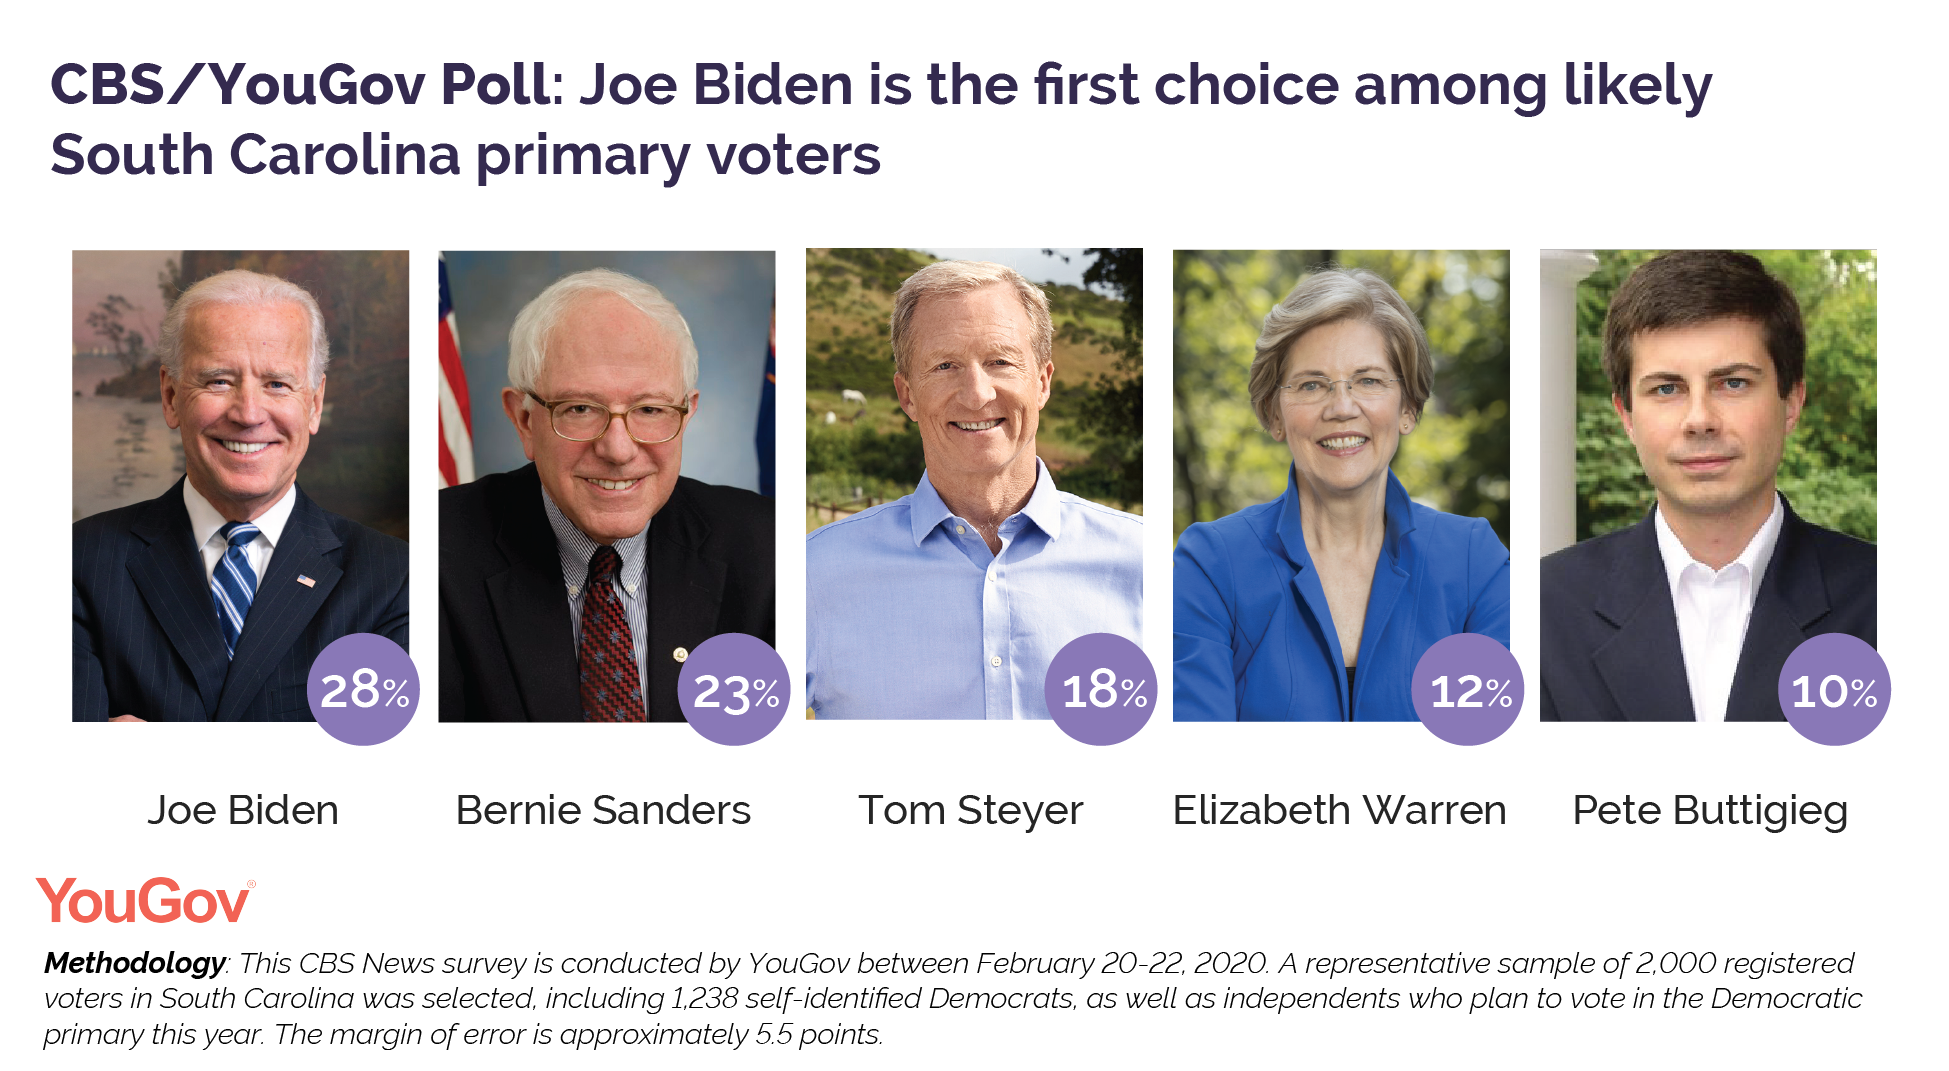 CBS/YouGov Poll: Joe Biden is the first choice among likely South Carolina primary voters